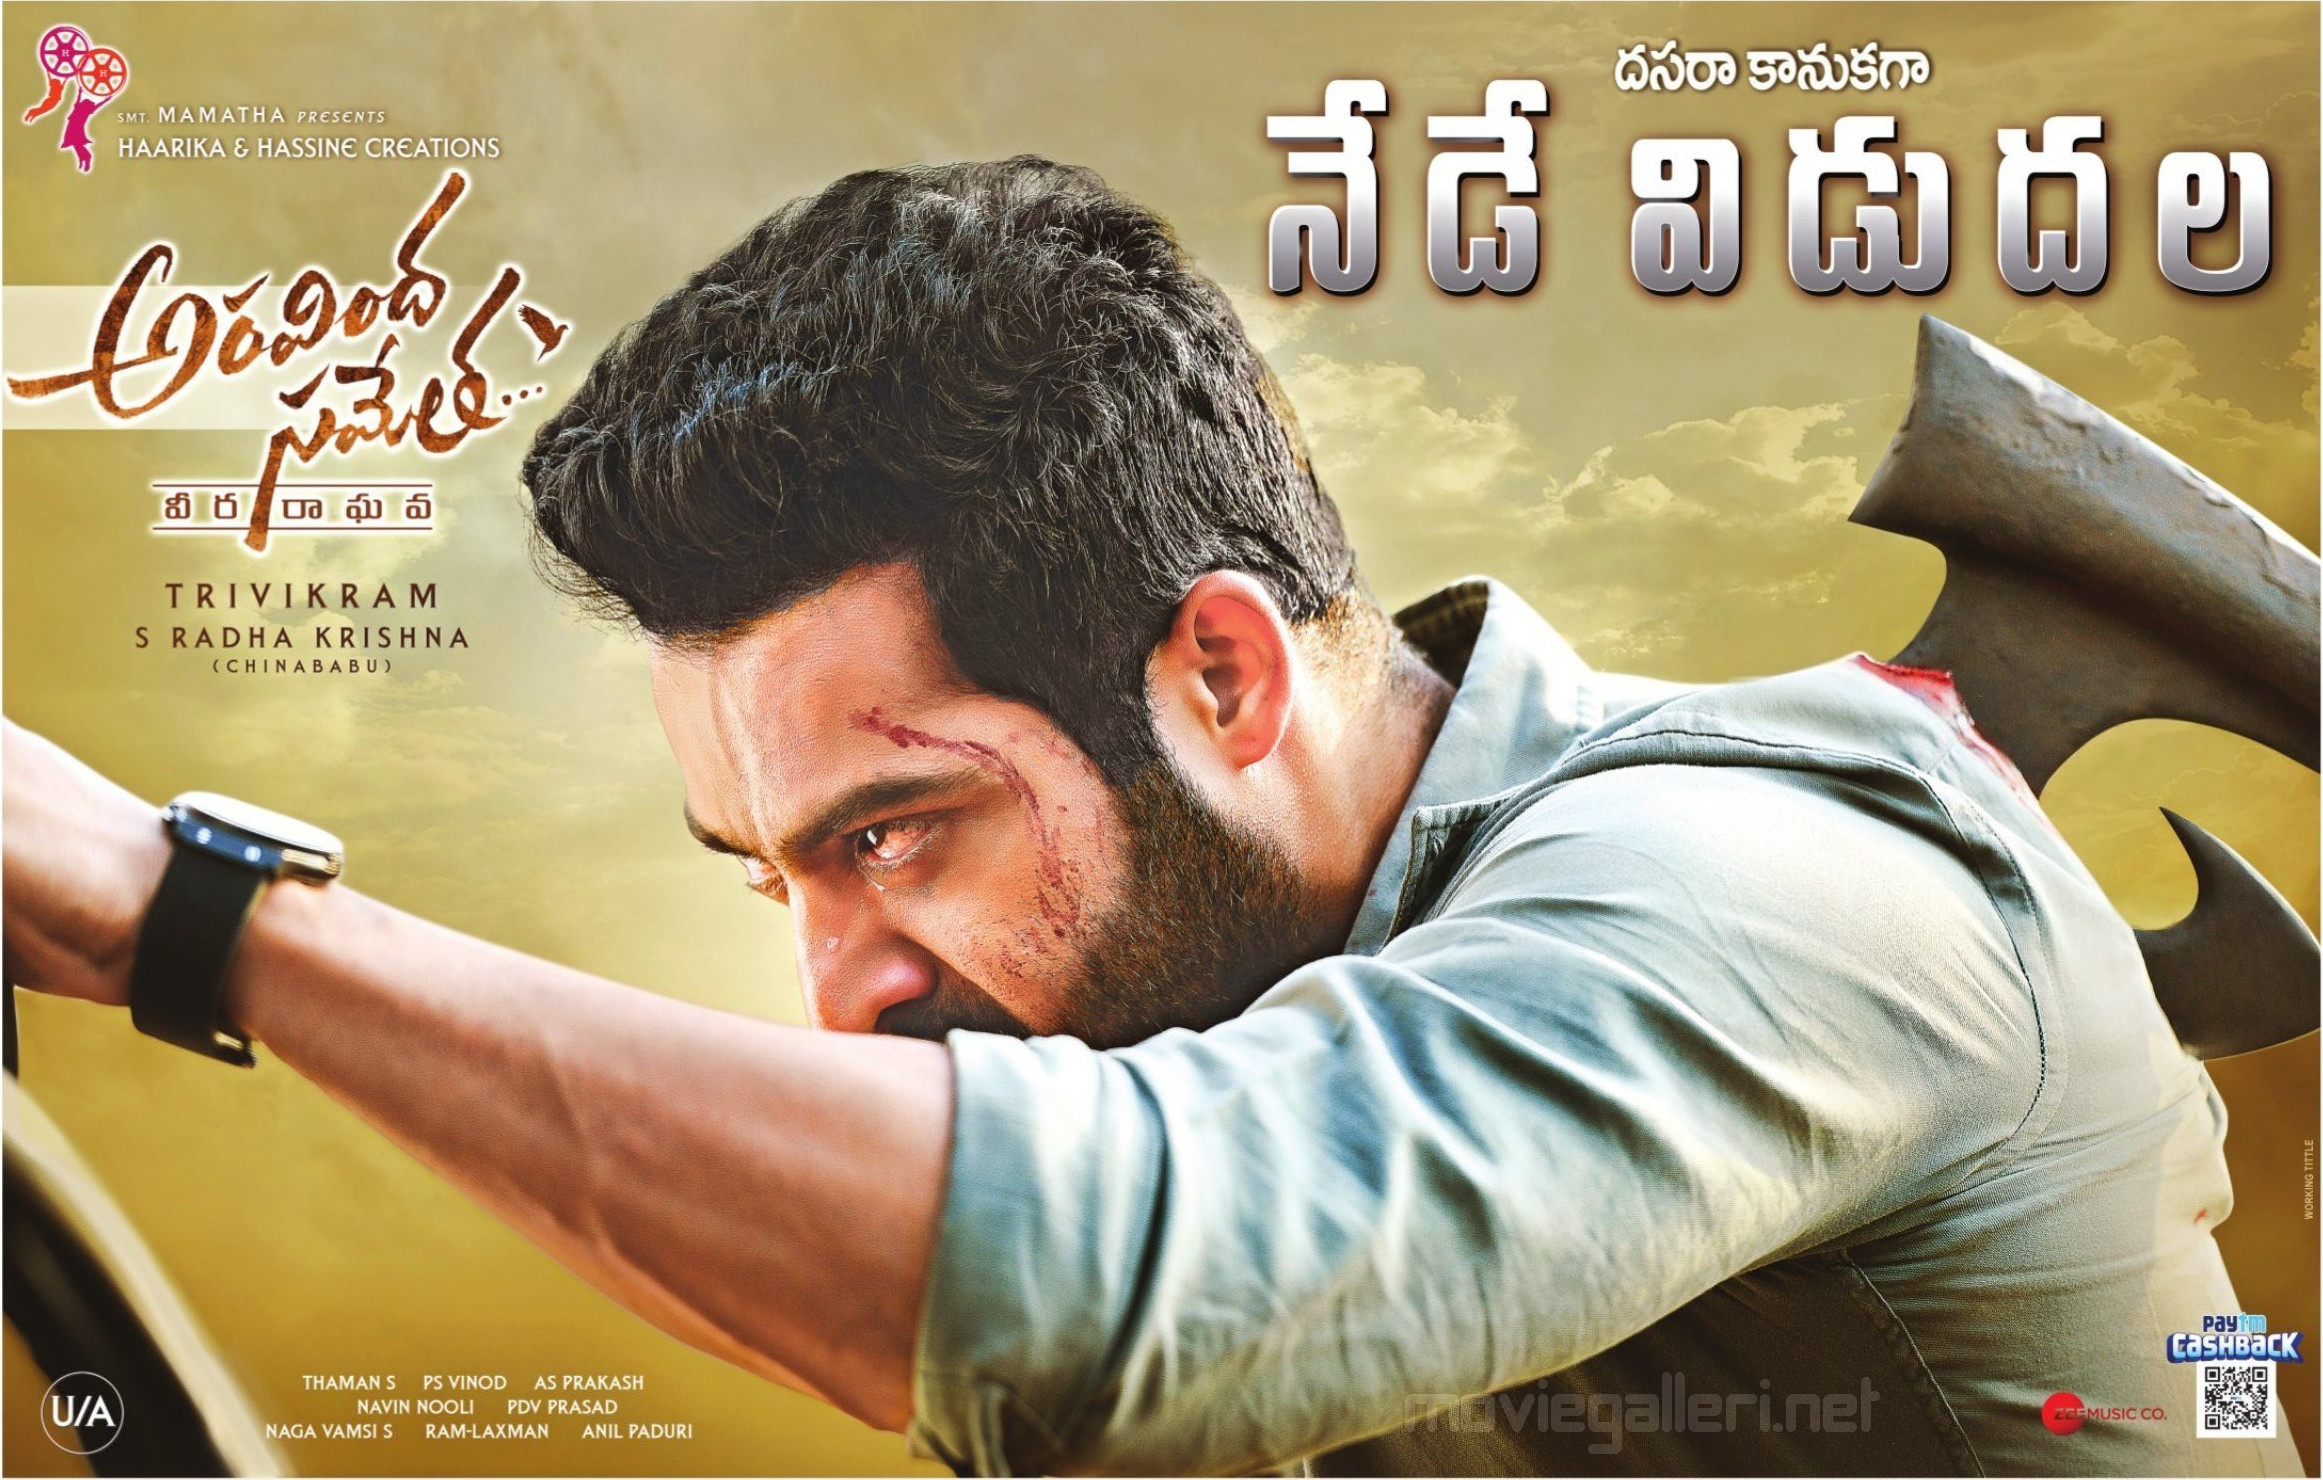 Jr NTR Aravindha Sametha Movie Release Today Wallpapers HD